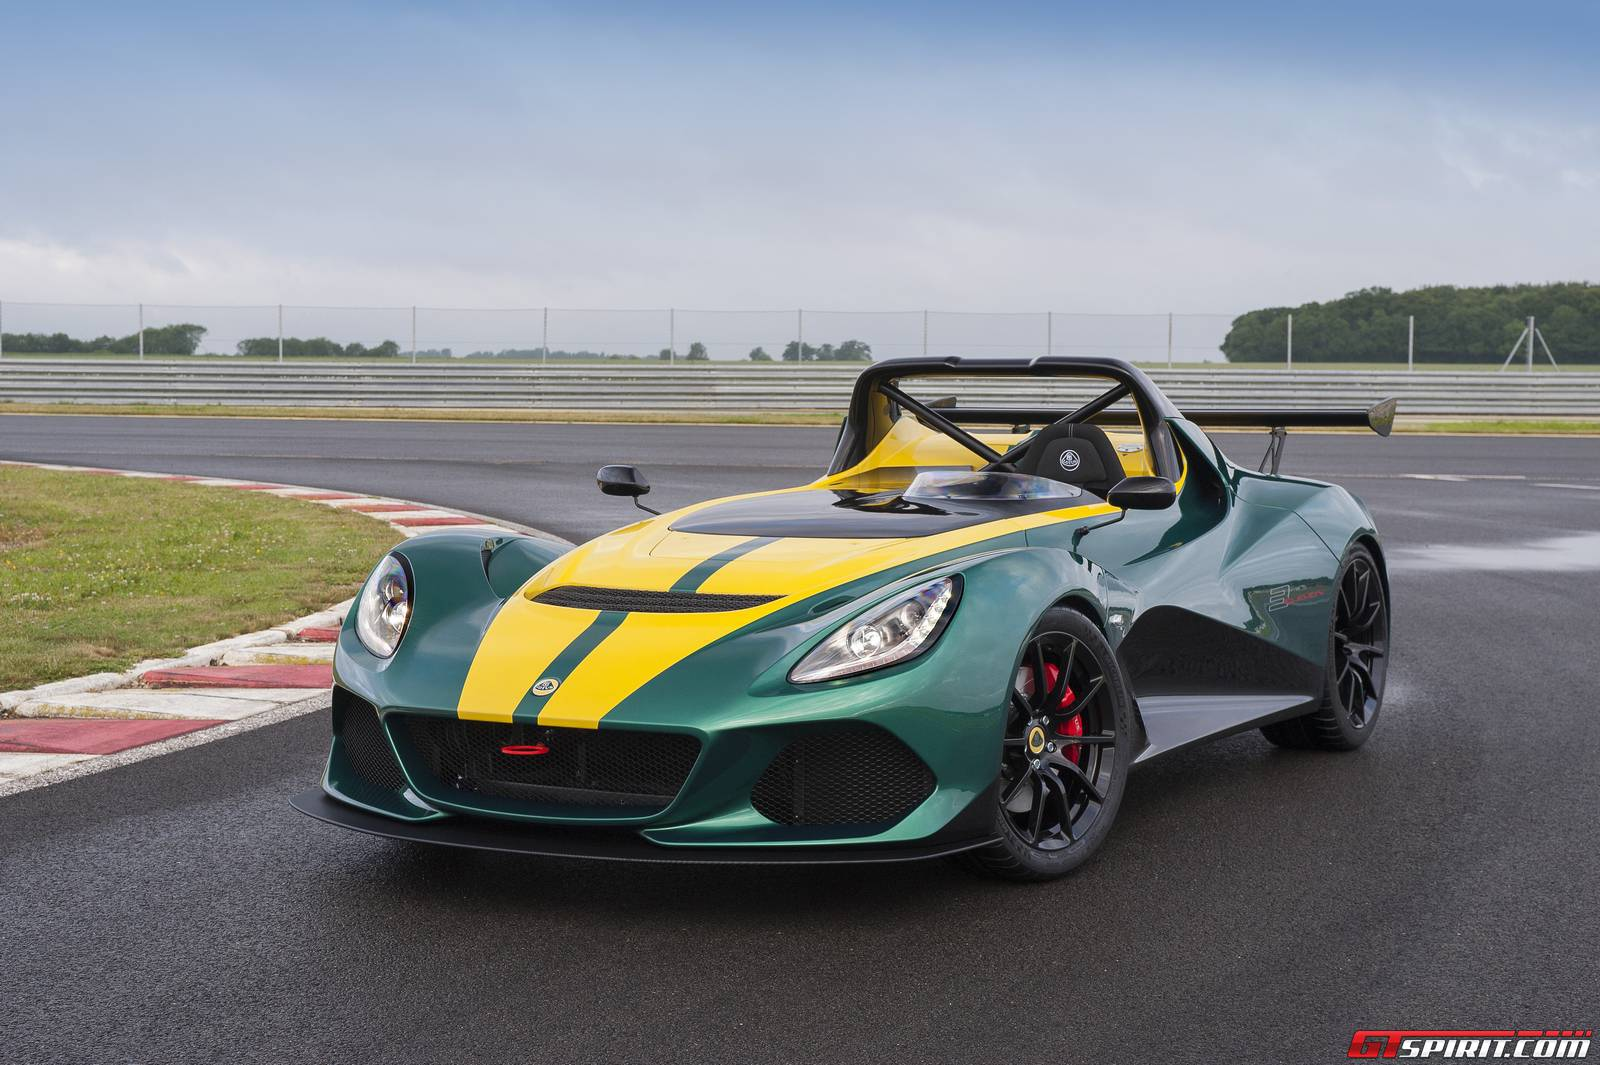 2019 Lotus Evora photo - 5